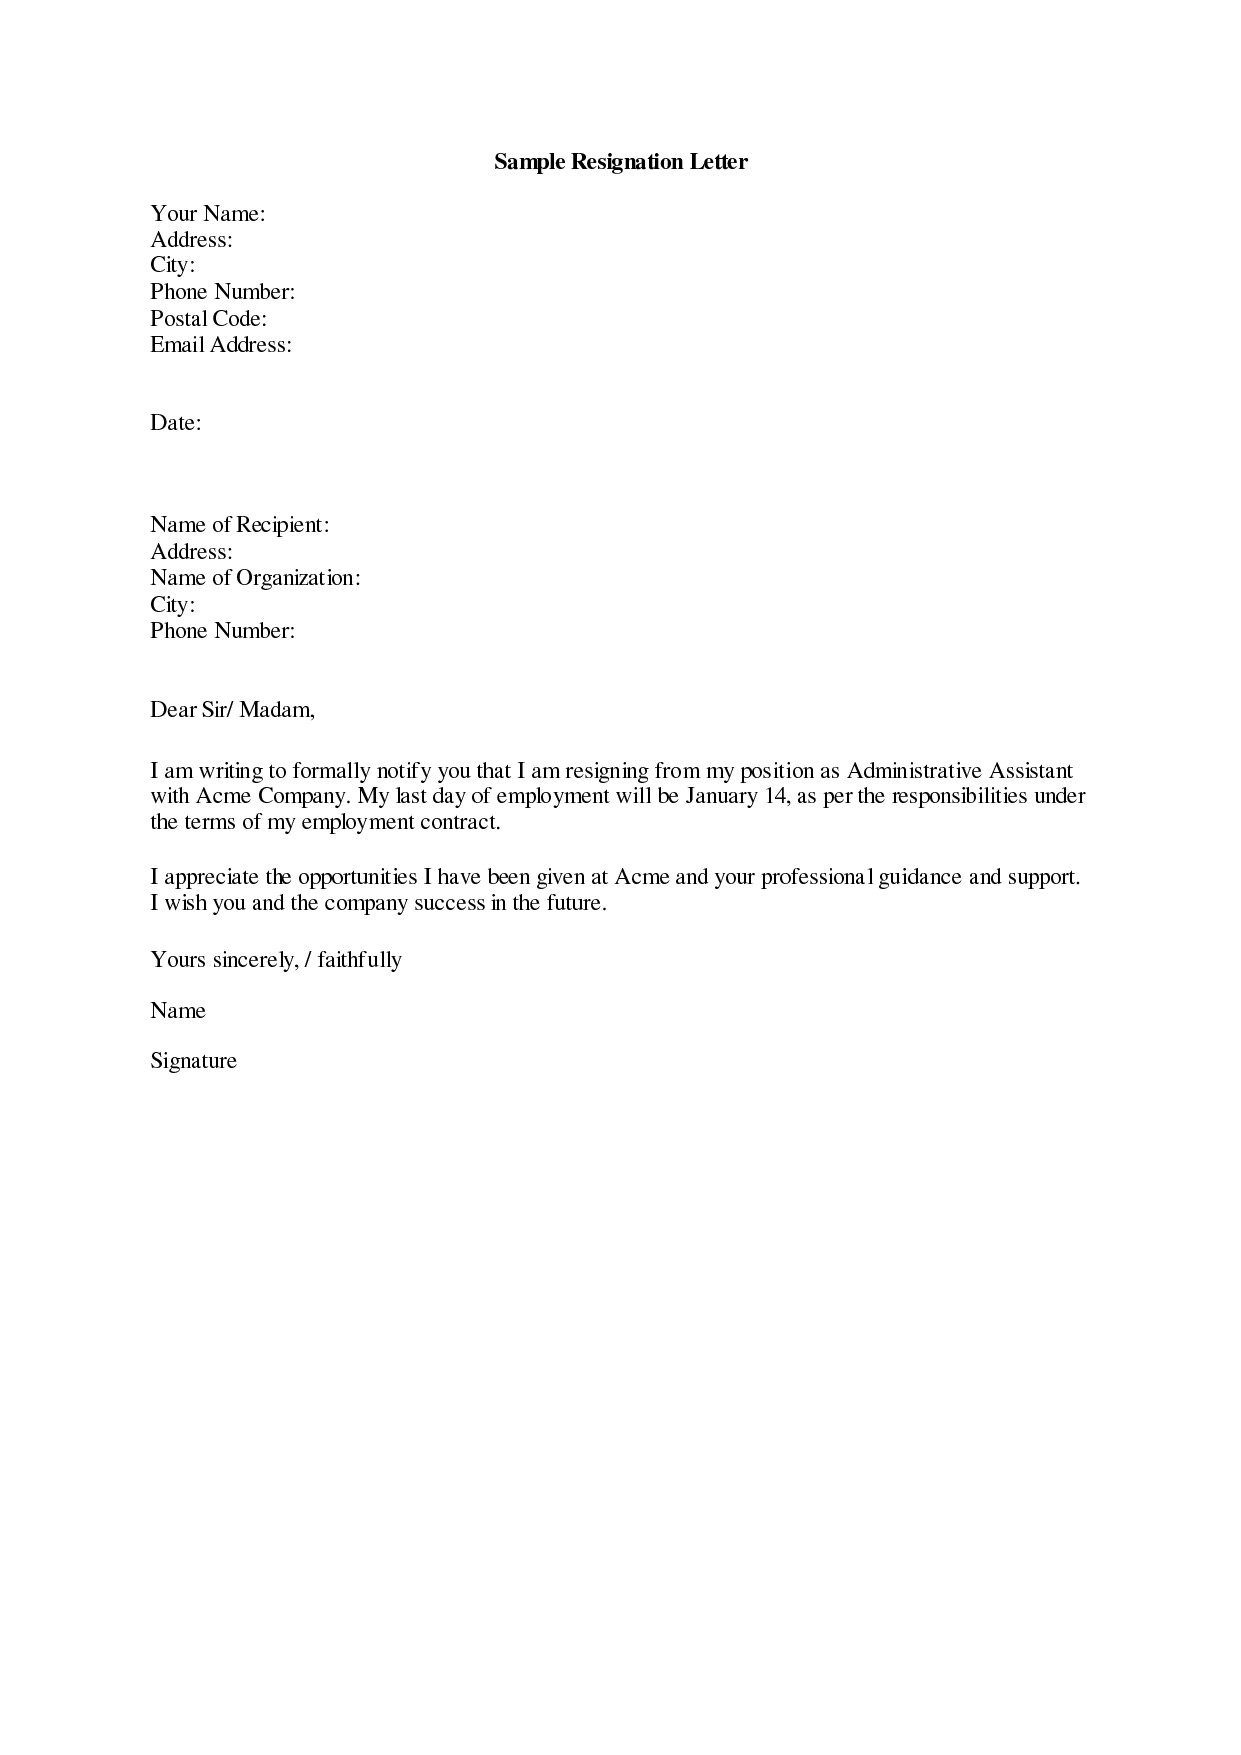 Letters Of Resignation Template Download Resignation Letters Pdf & Doc